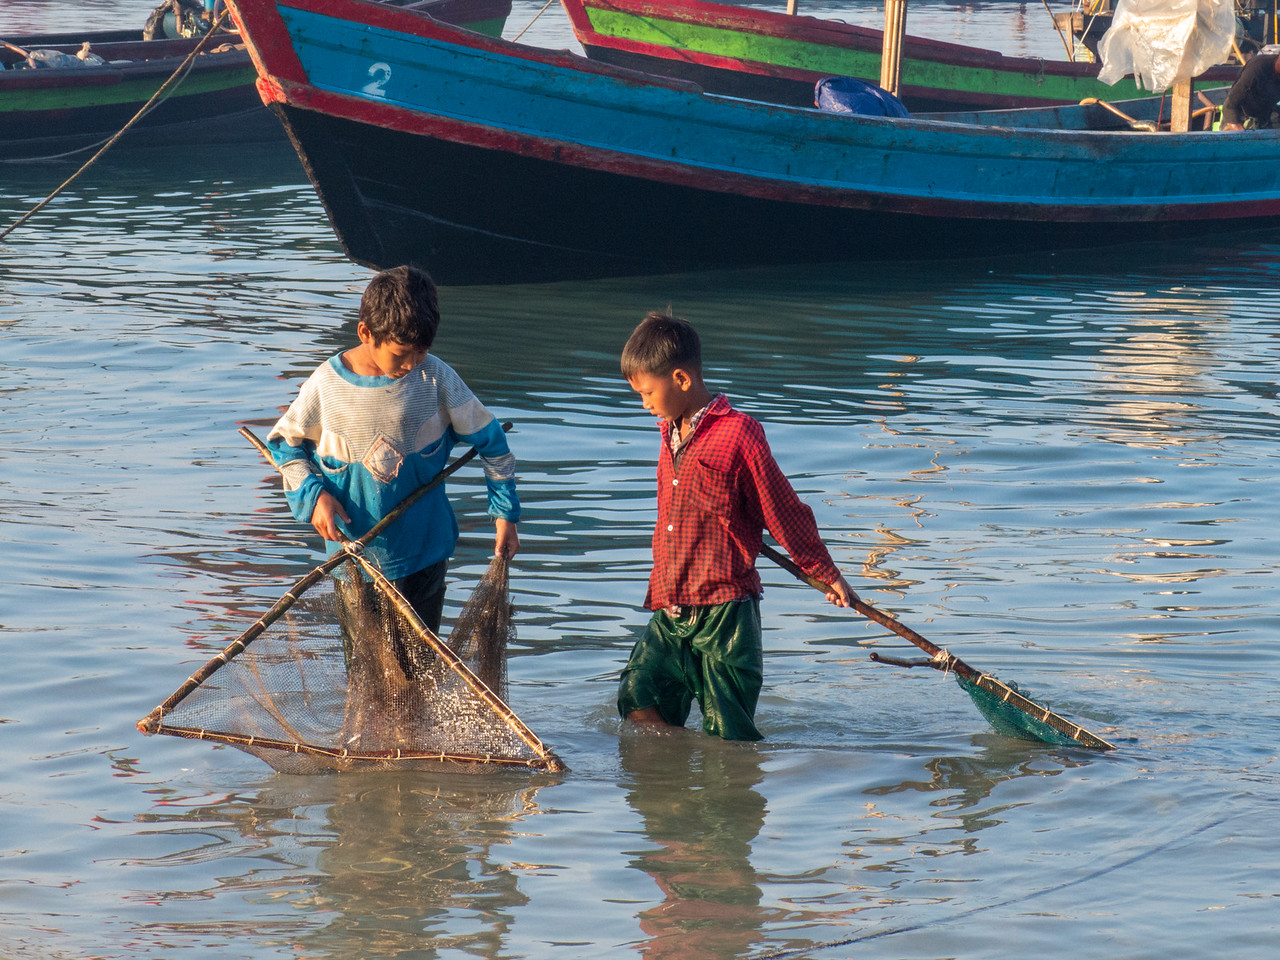 Nothing is Wasted. The Boys are Netting Spillage from the Fishing Boats